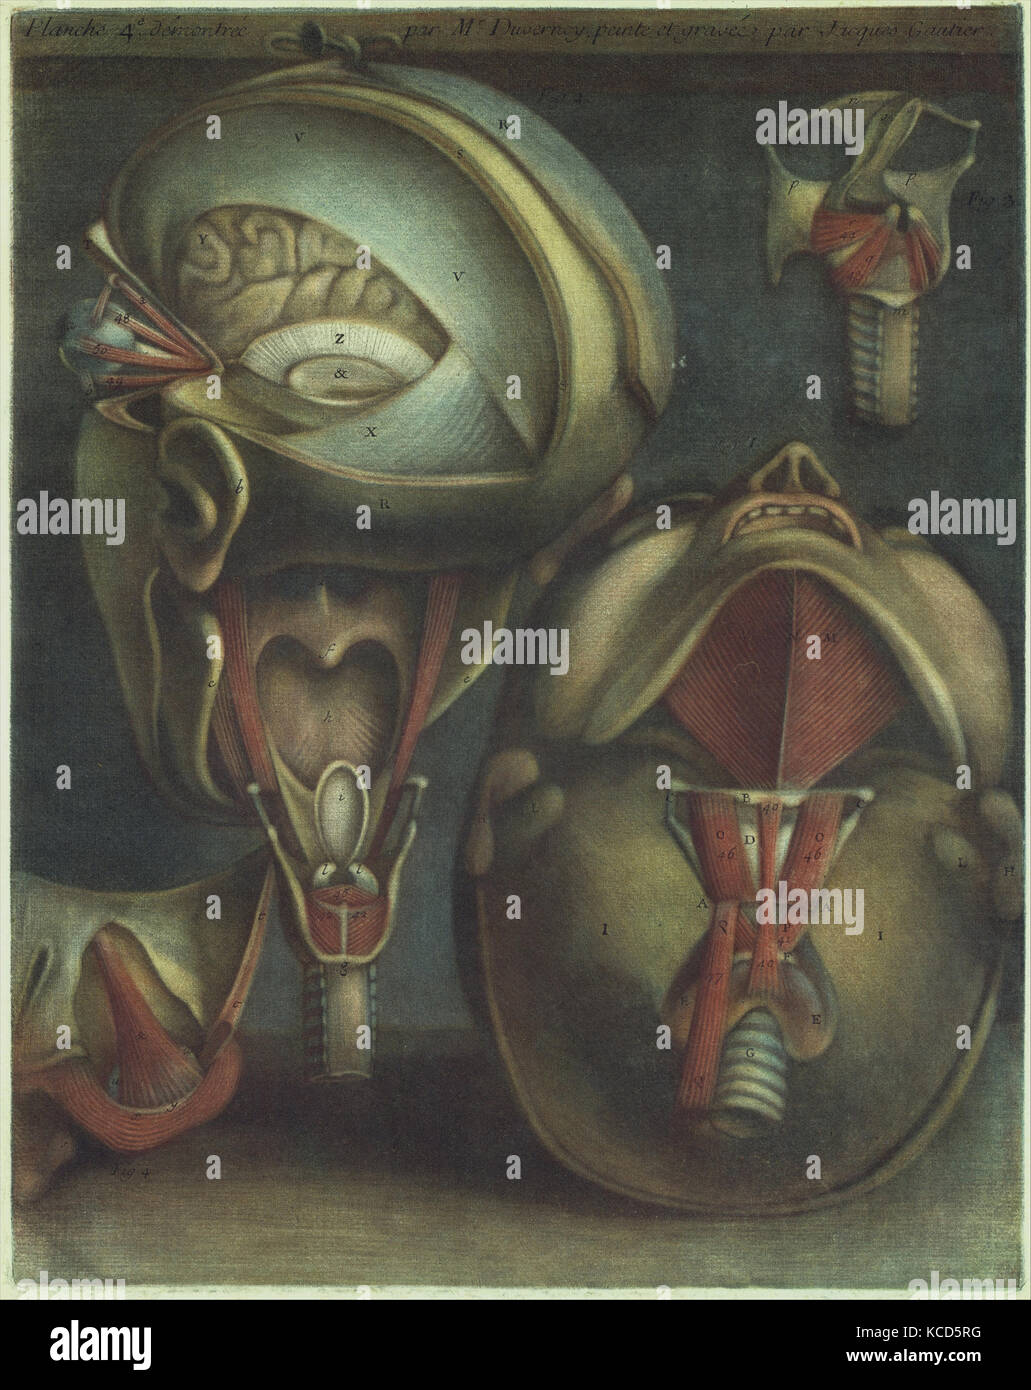 Two Views of the Head (plate 4), in Myologie Complette en Couleur et Grandeur Naturelle, Jacques Fabien Gautier Stock Photo